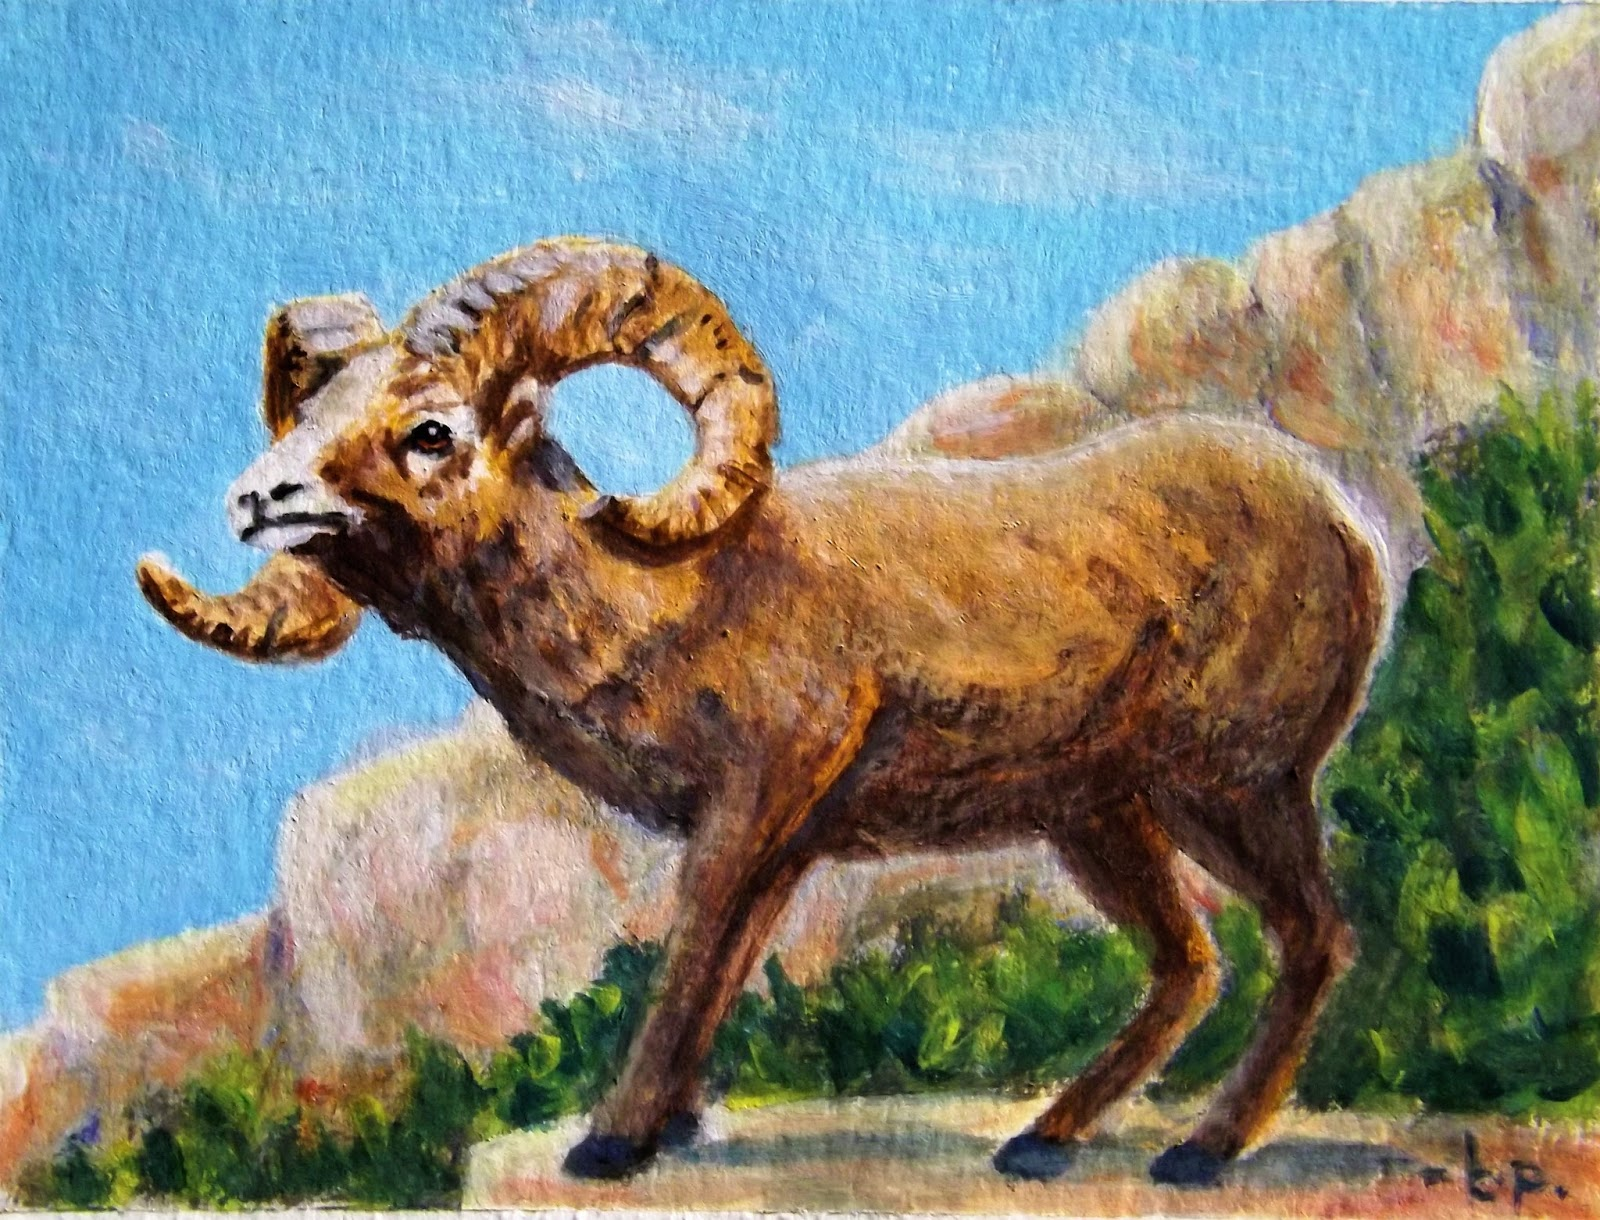 The Adverse Effects of Climate Change on Desert Bighorn Sheep